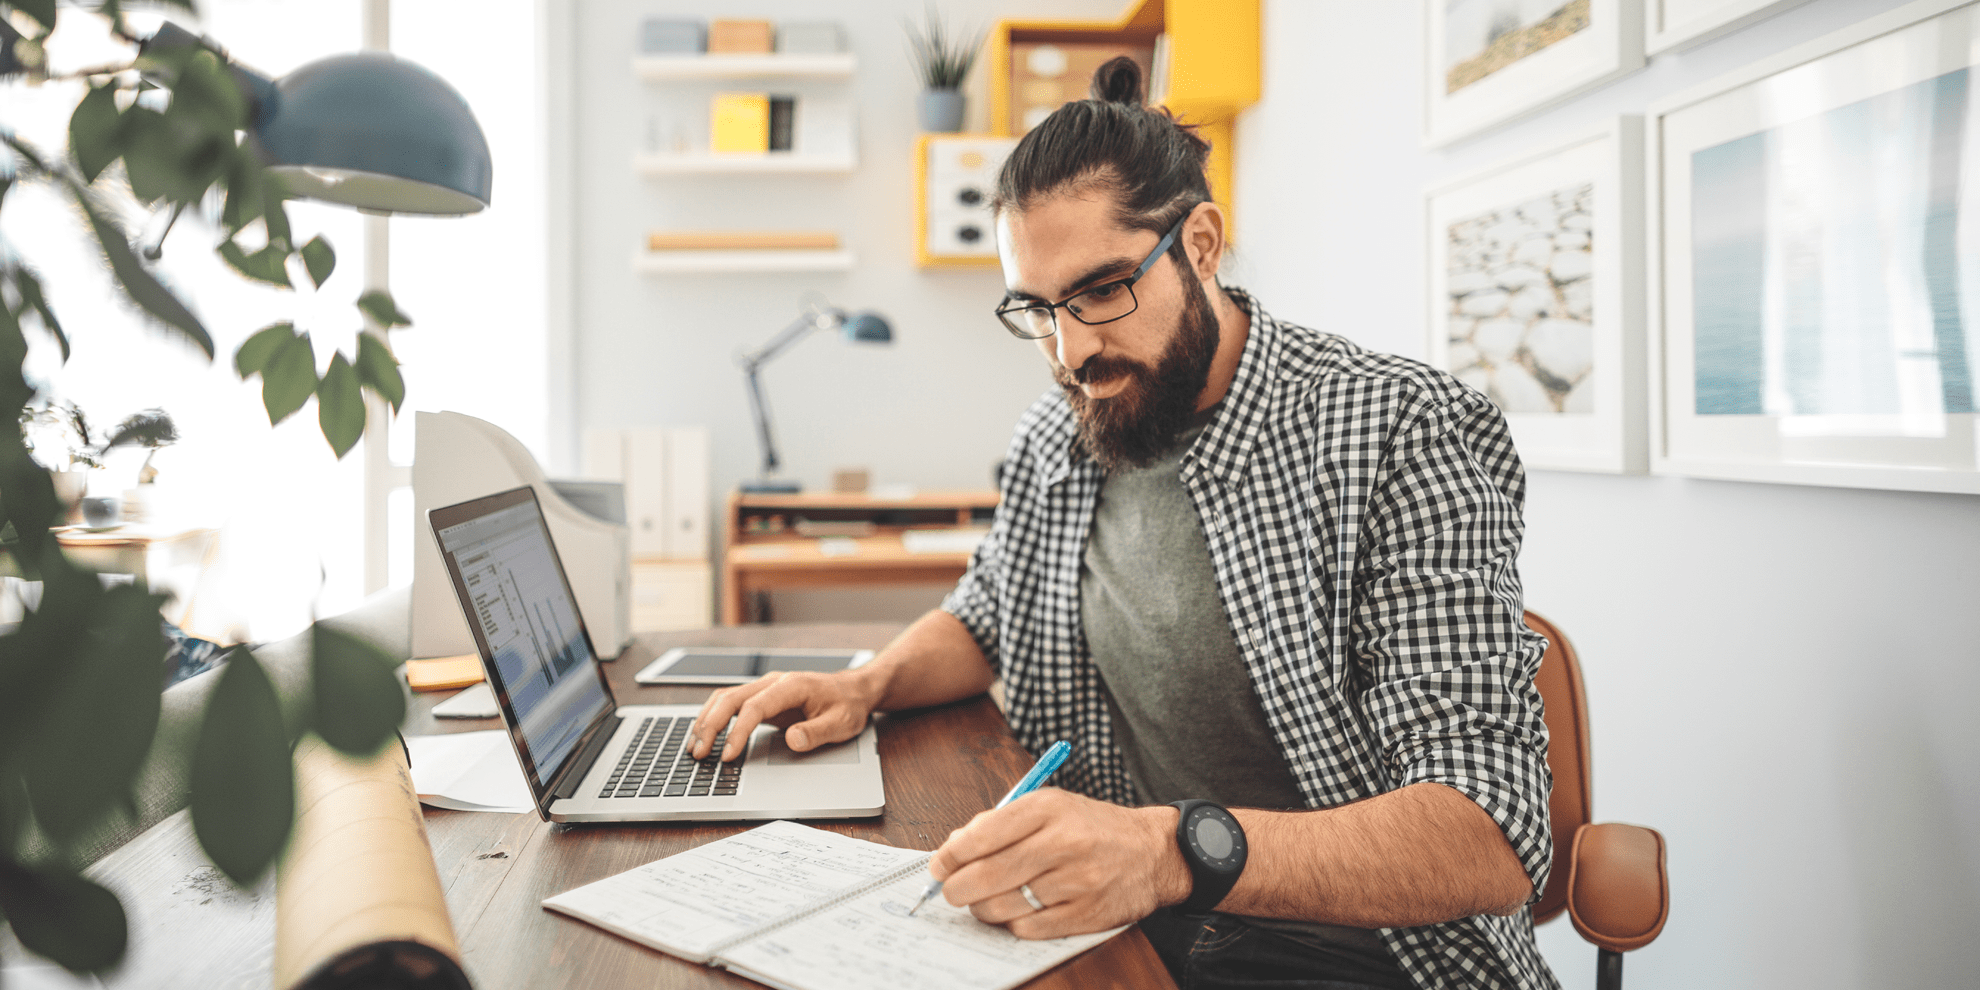 Sponsored courses | Free online courses with certifications in June 2021 –  FutureLearn